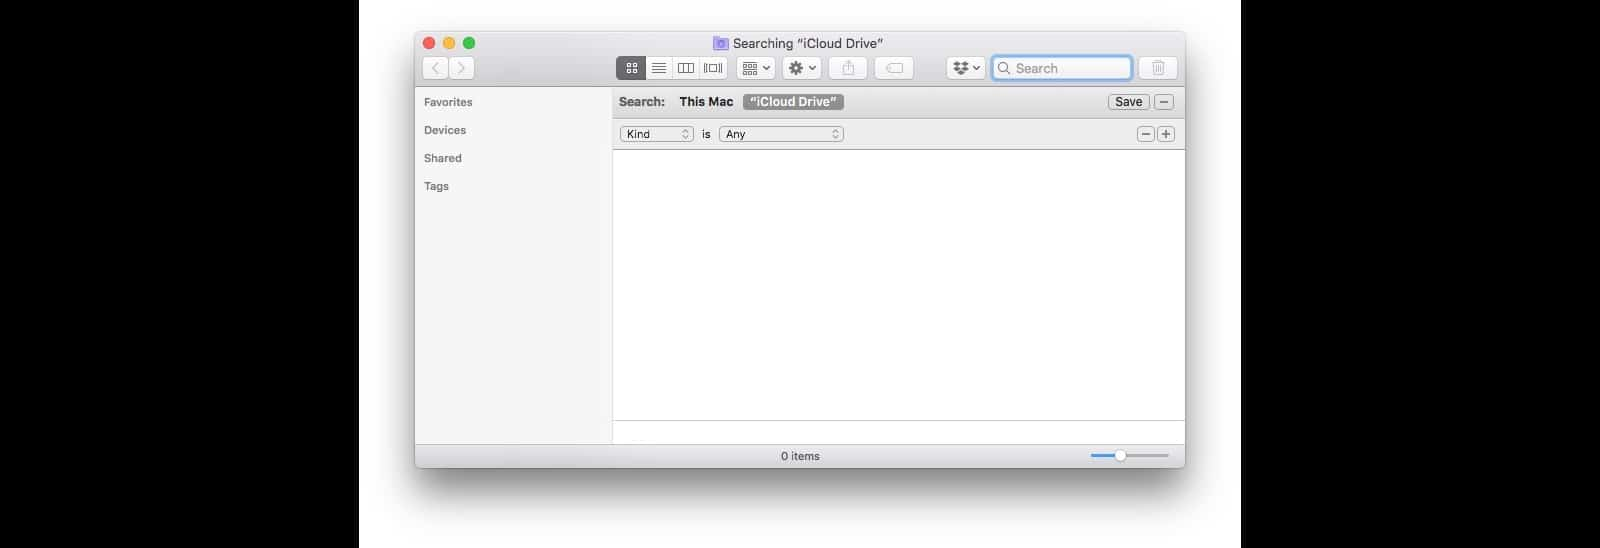 This is the basic 'Find' window in Finder.